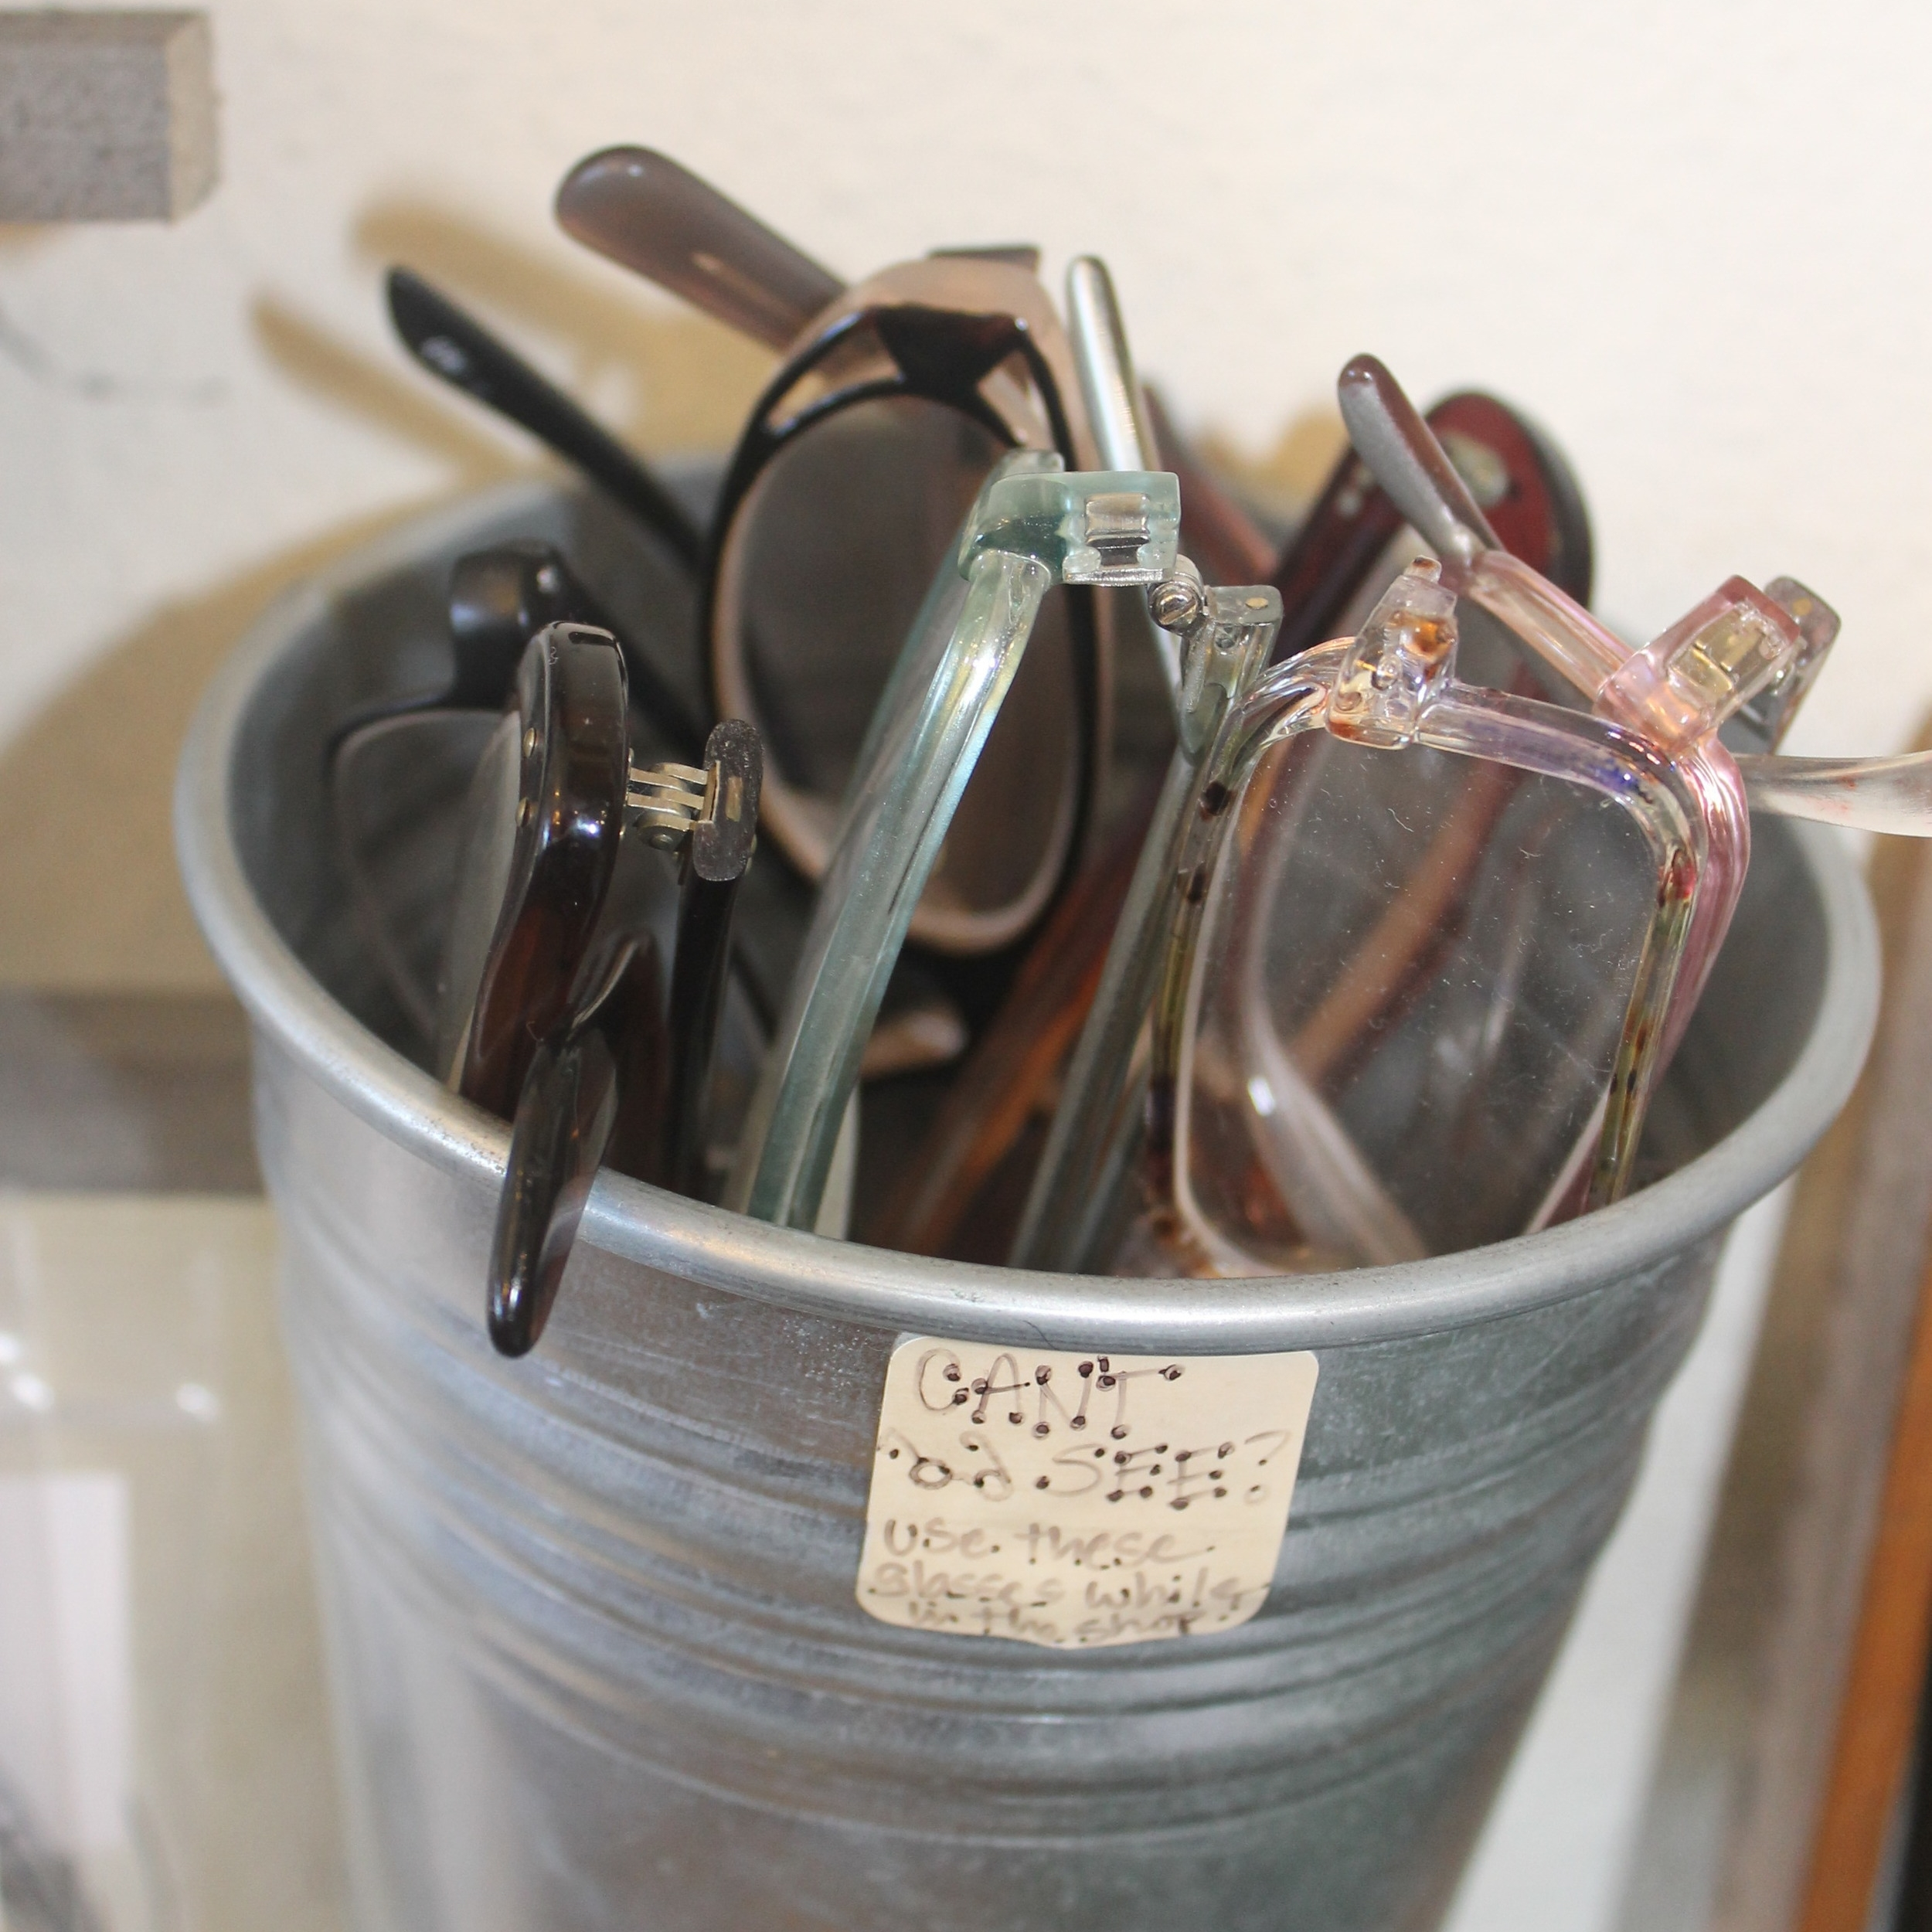 Blue Door Beads provides reading glasses for customers while they shop